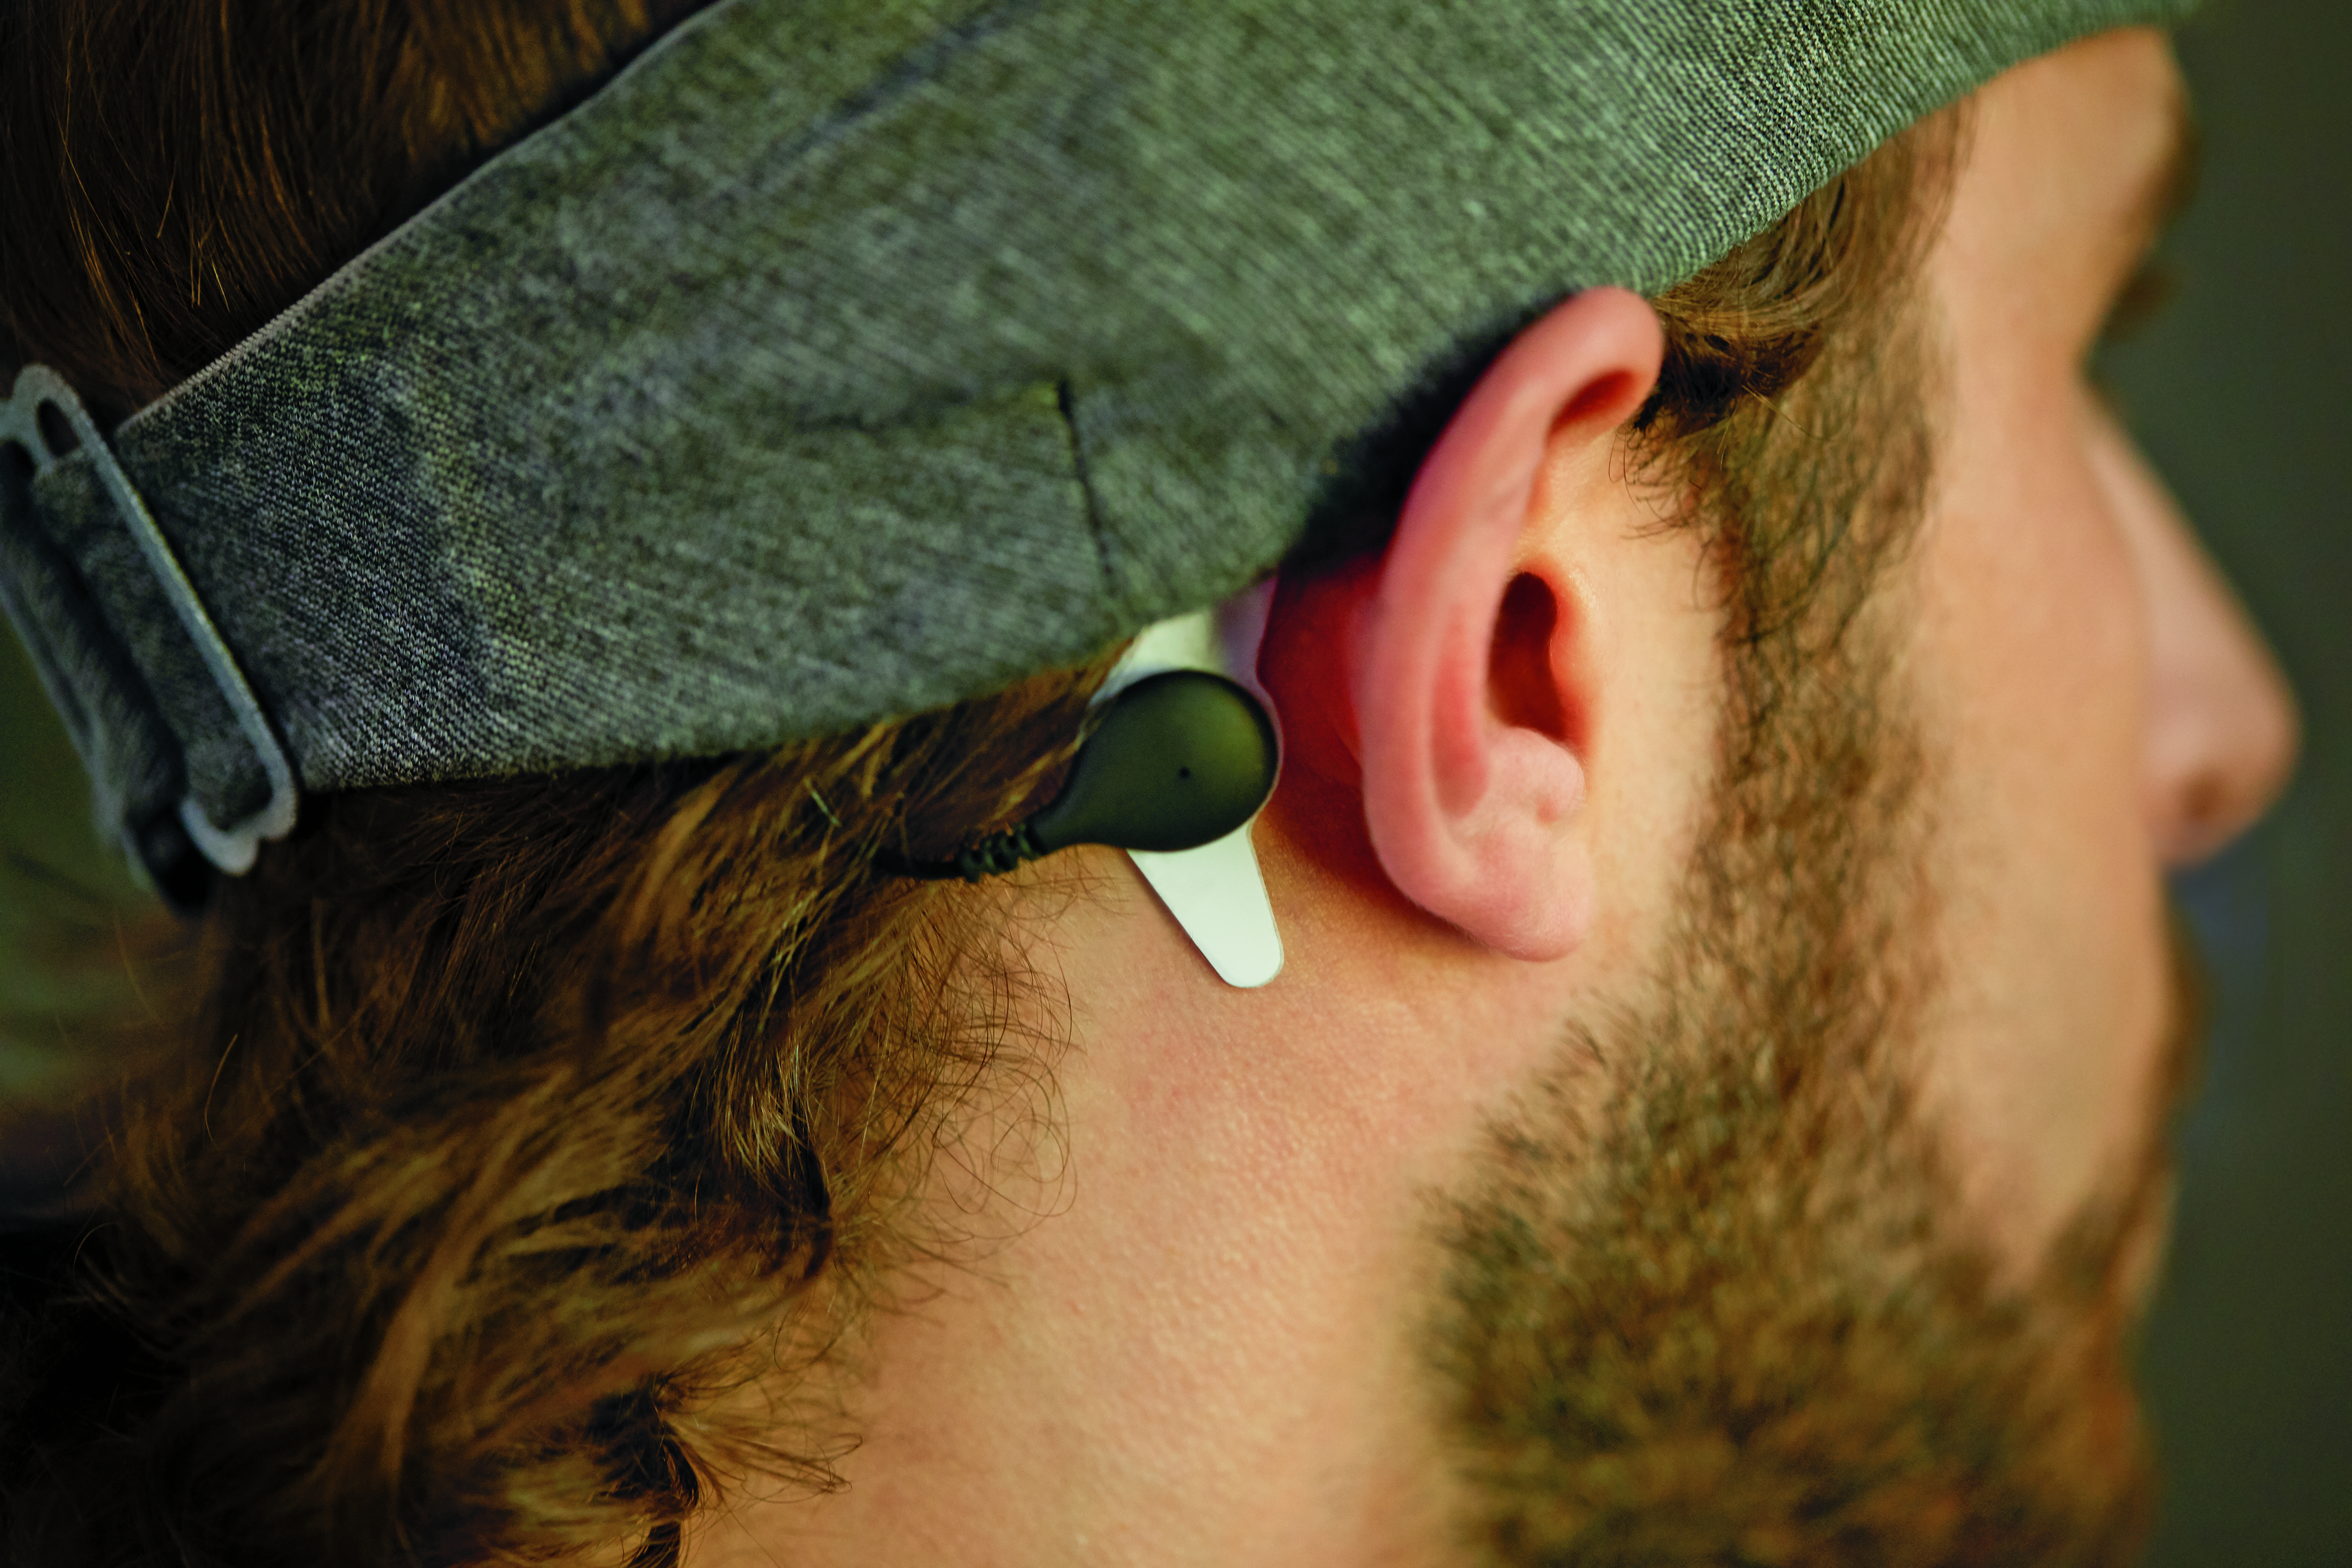 Philips releases a headband that plays white noise to help you sleep